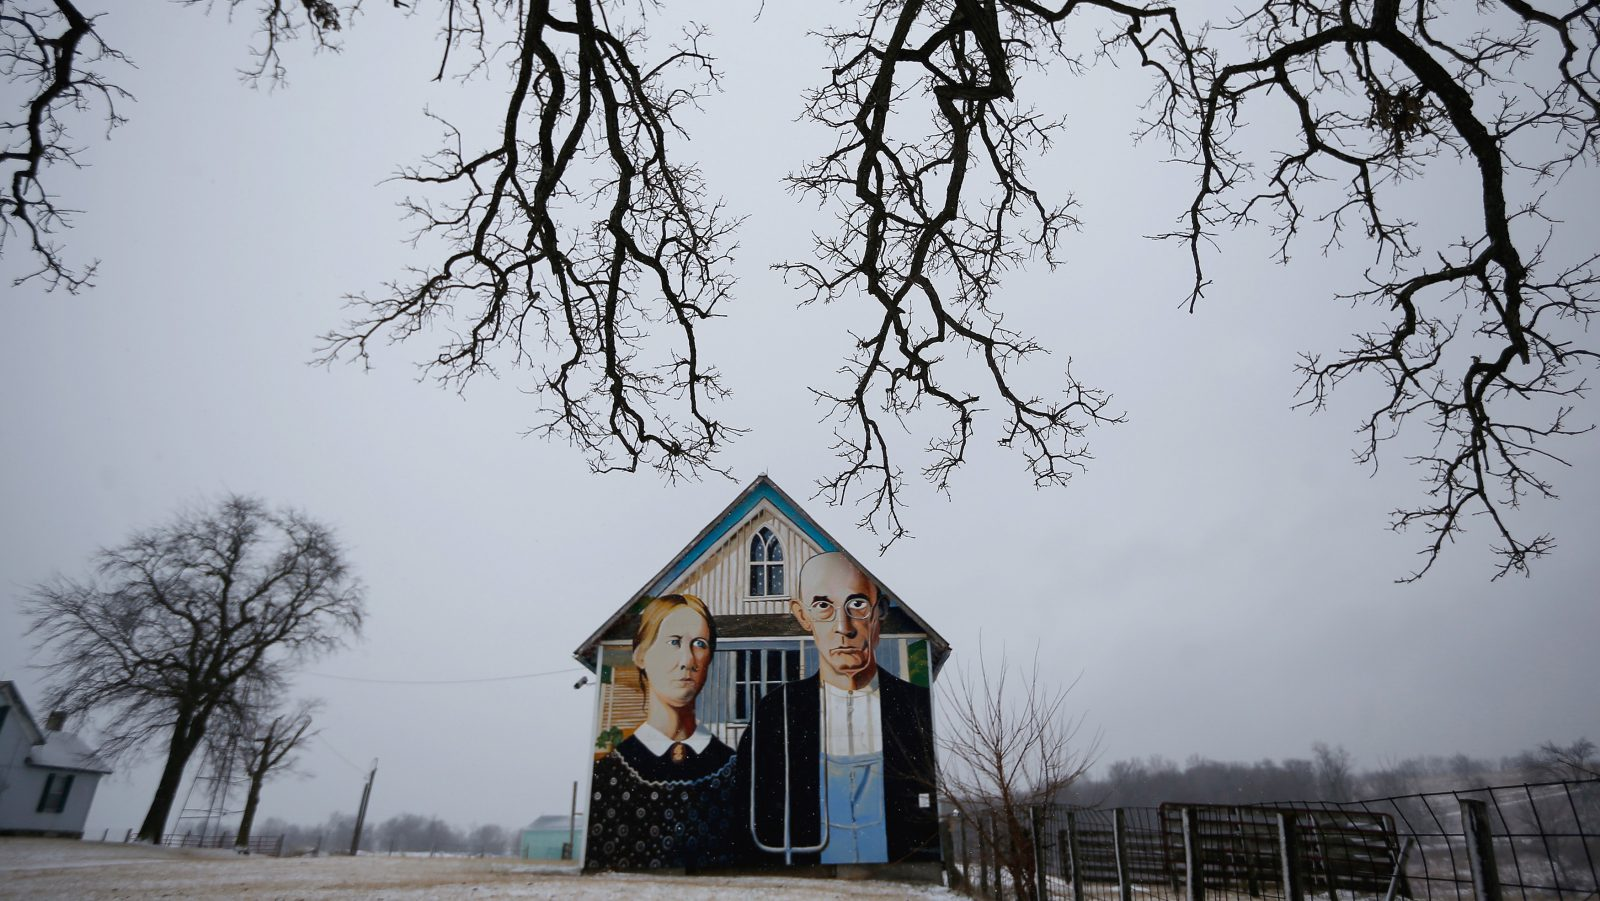 """A barn decorated with a mural inspired by Grant Wood's painting, """"American Gothic,"""" is seen in Mt. Vernon, Iowa, January 25, 2015. Artist Mark Benesh recreated the original which was painted by Grant Wood. Iowa, the American heartland. Endless farm fields and quiet towns. 56,273 square miles that are soon to become the focus of the nation as the long process of electing the next U.S. president begins. REUTERS/Jim Young TPX IMAGES OF THE DAY  PICTURE 4 OF 18 FOR WIDER IMAGE STORY 'IOWA - AMERICA'S HEARTLAND'  SEARCH 'YOUNG HEARTLAND' FOR ALL IMAGES - RTR4UNQG"""